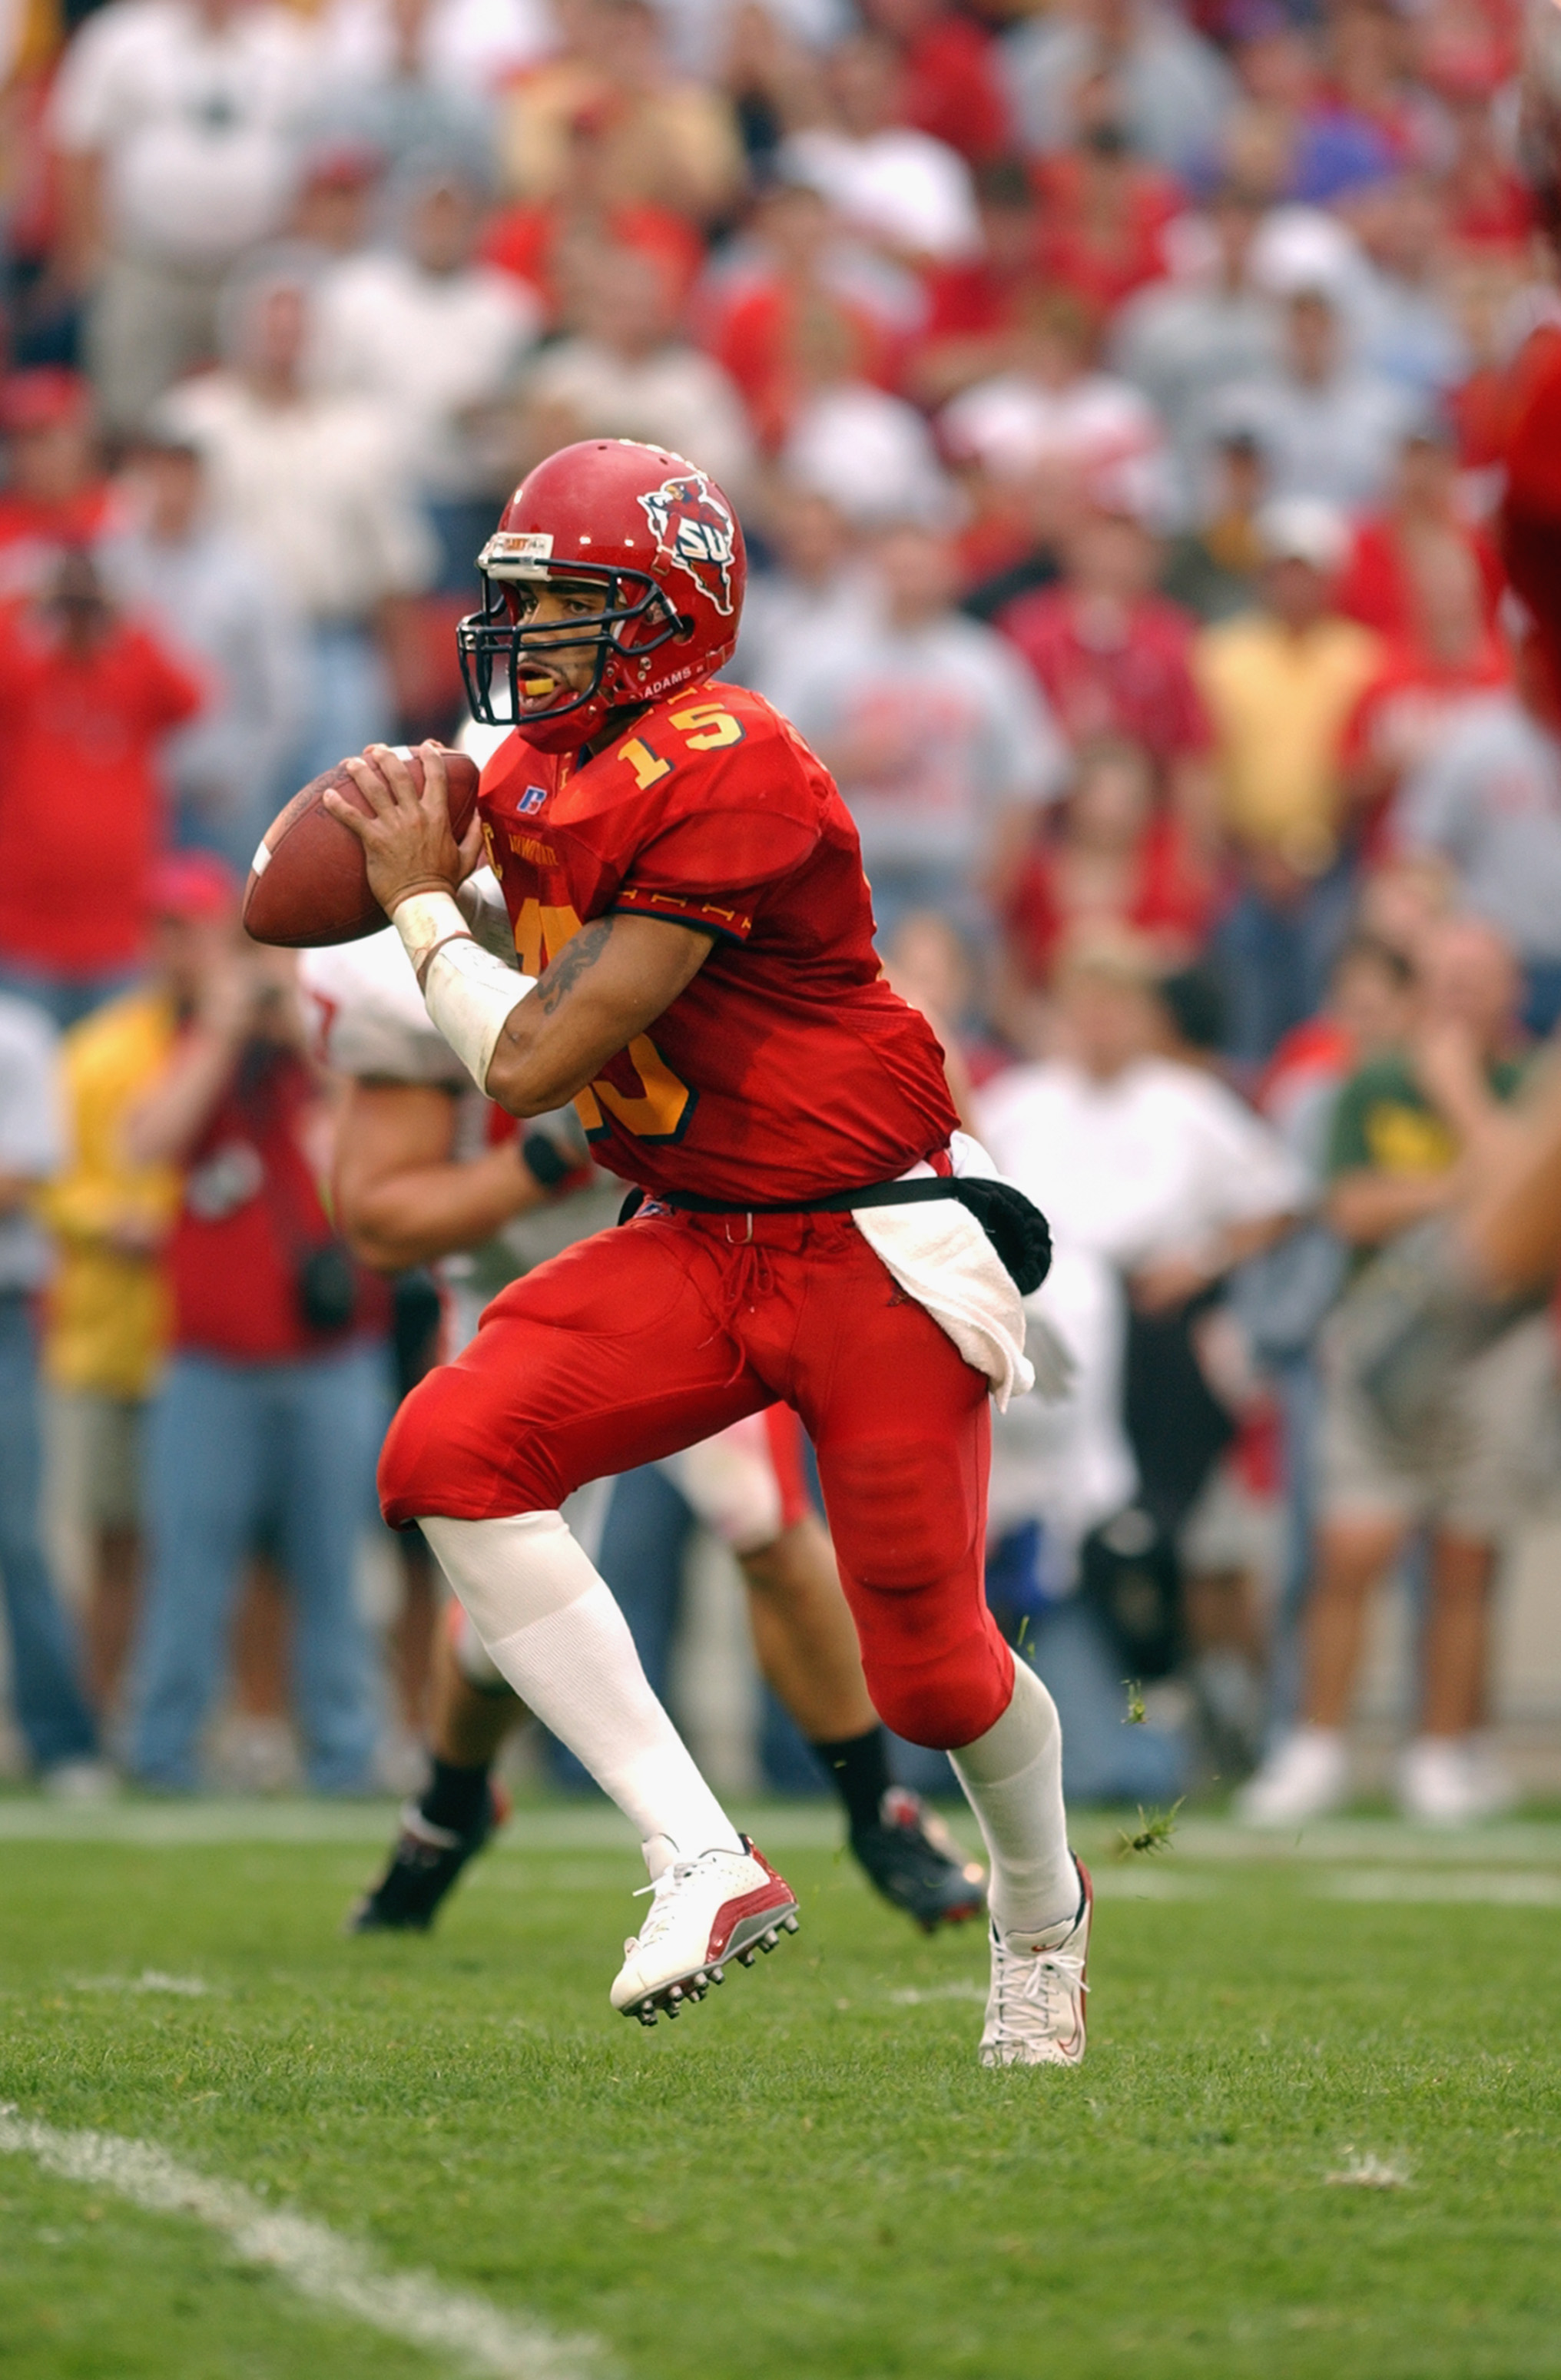 0dcd6837491 AMES, IA - SEPTEMBER 28: Quarterback Seneca Wallace #15 of the Iowa State